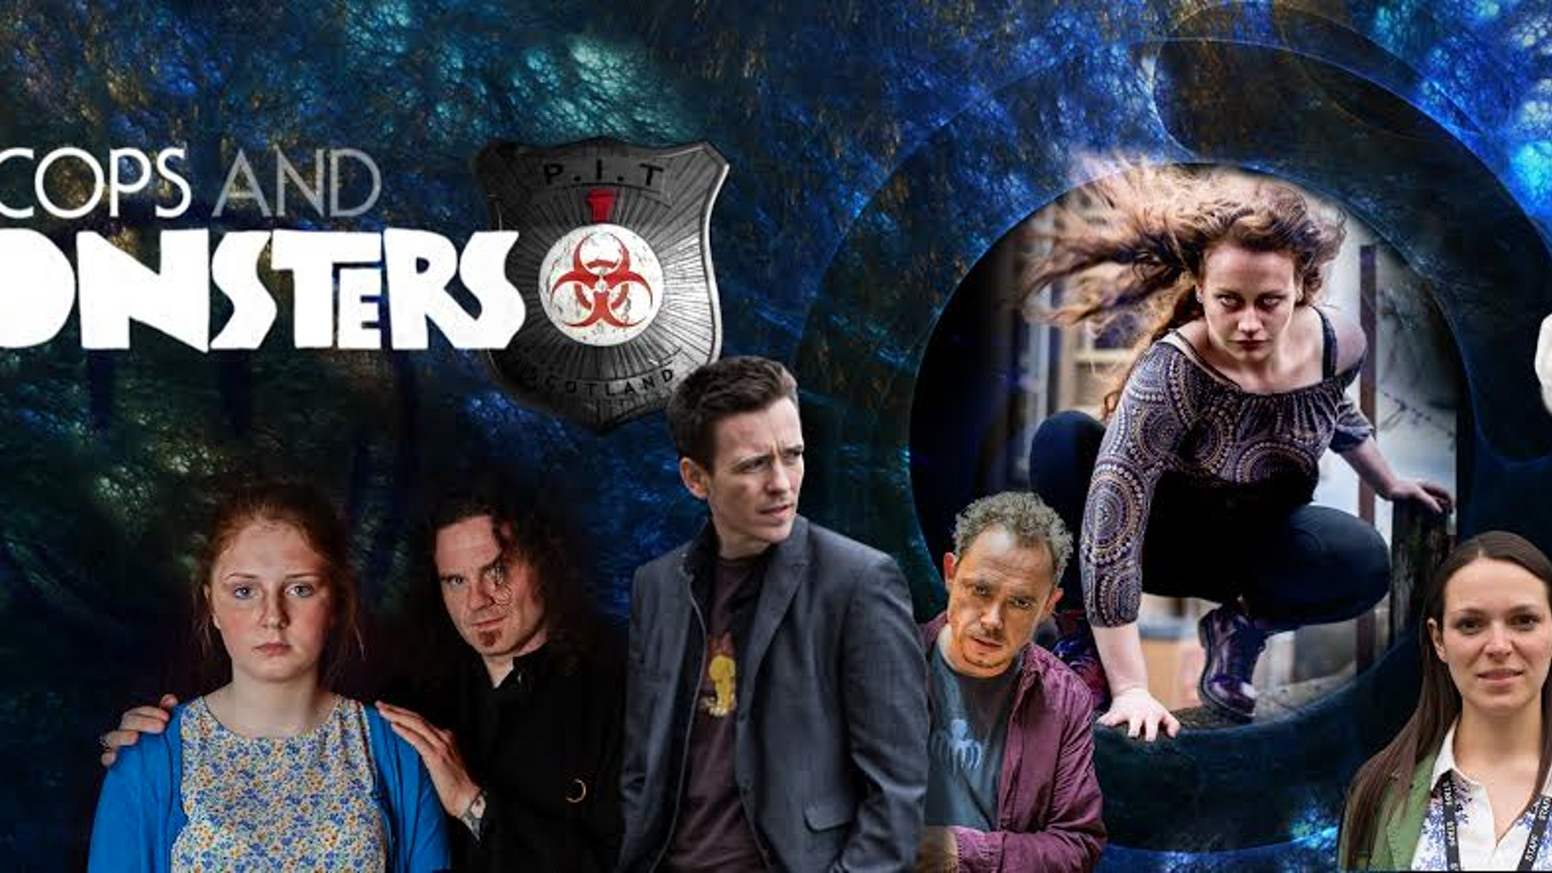 Cops and Monsters is an ongoing award winning webseries from Scotland. Follow the PITS team as they police the supernatural community.